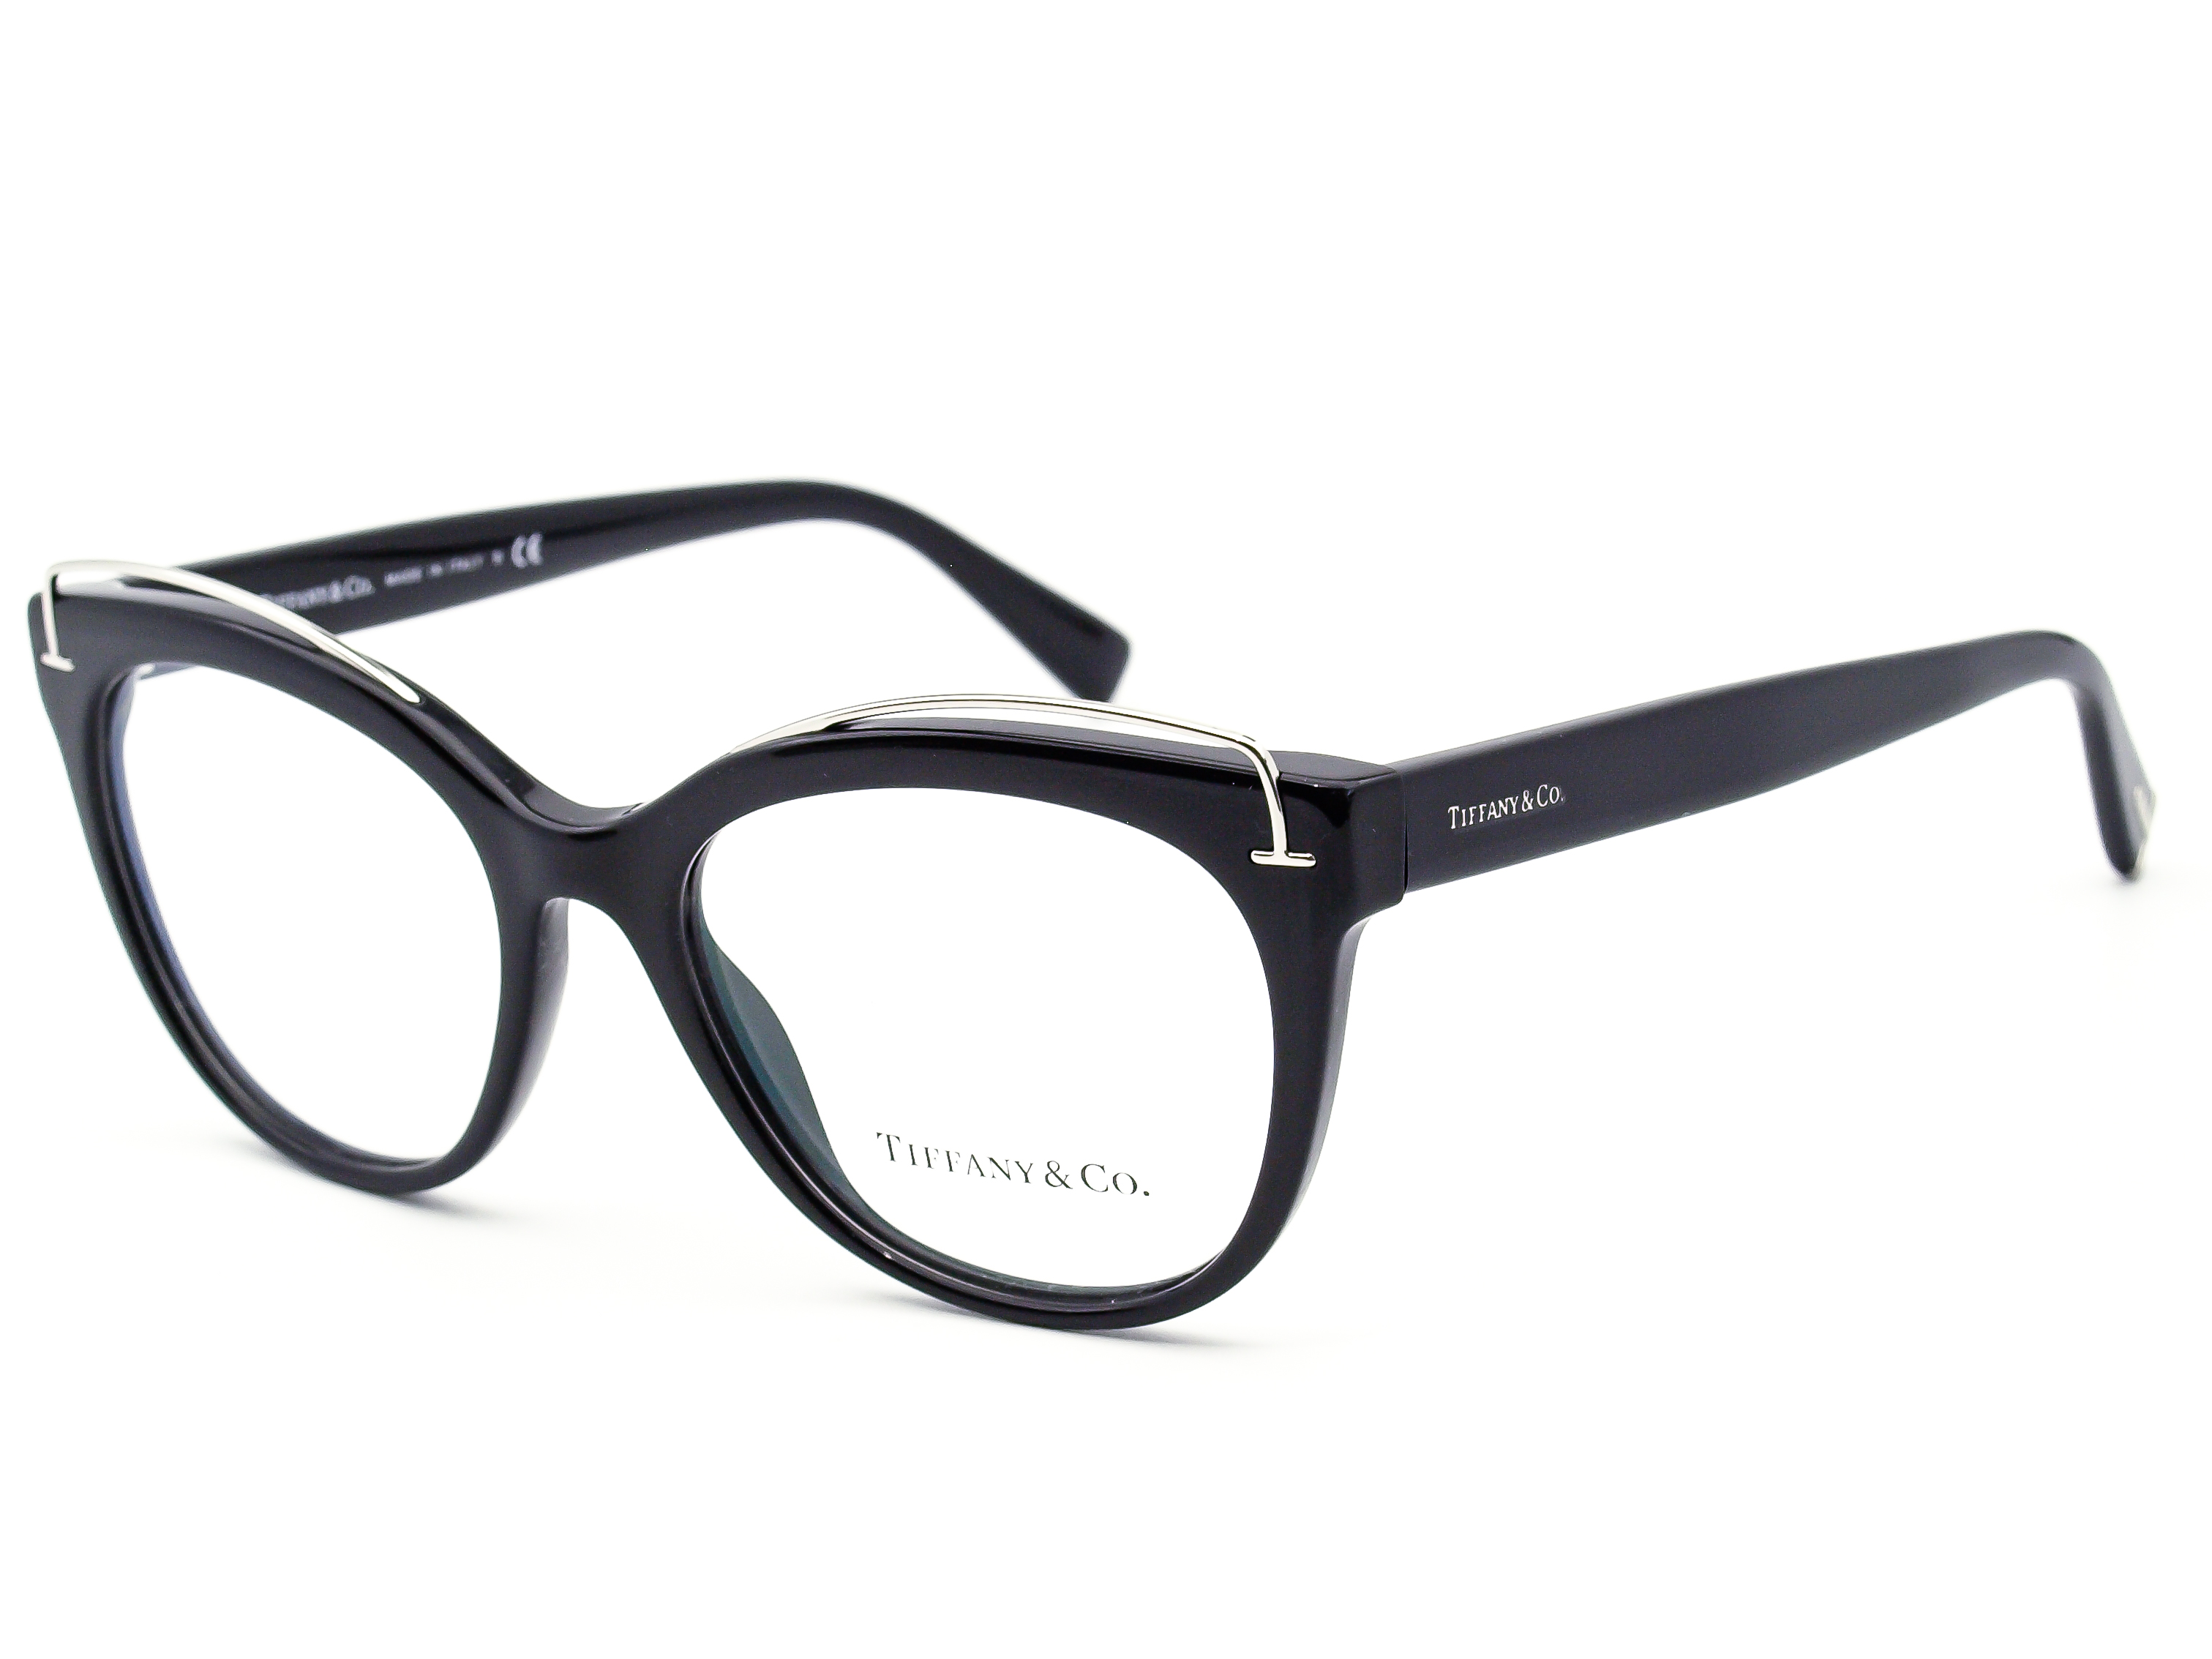 Tiffany & Co. TF 2166 8001 Eyeglasses